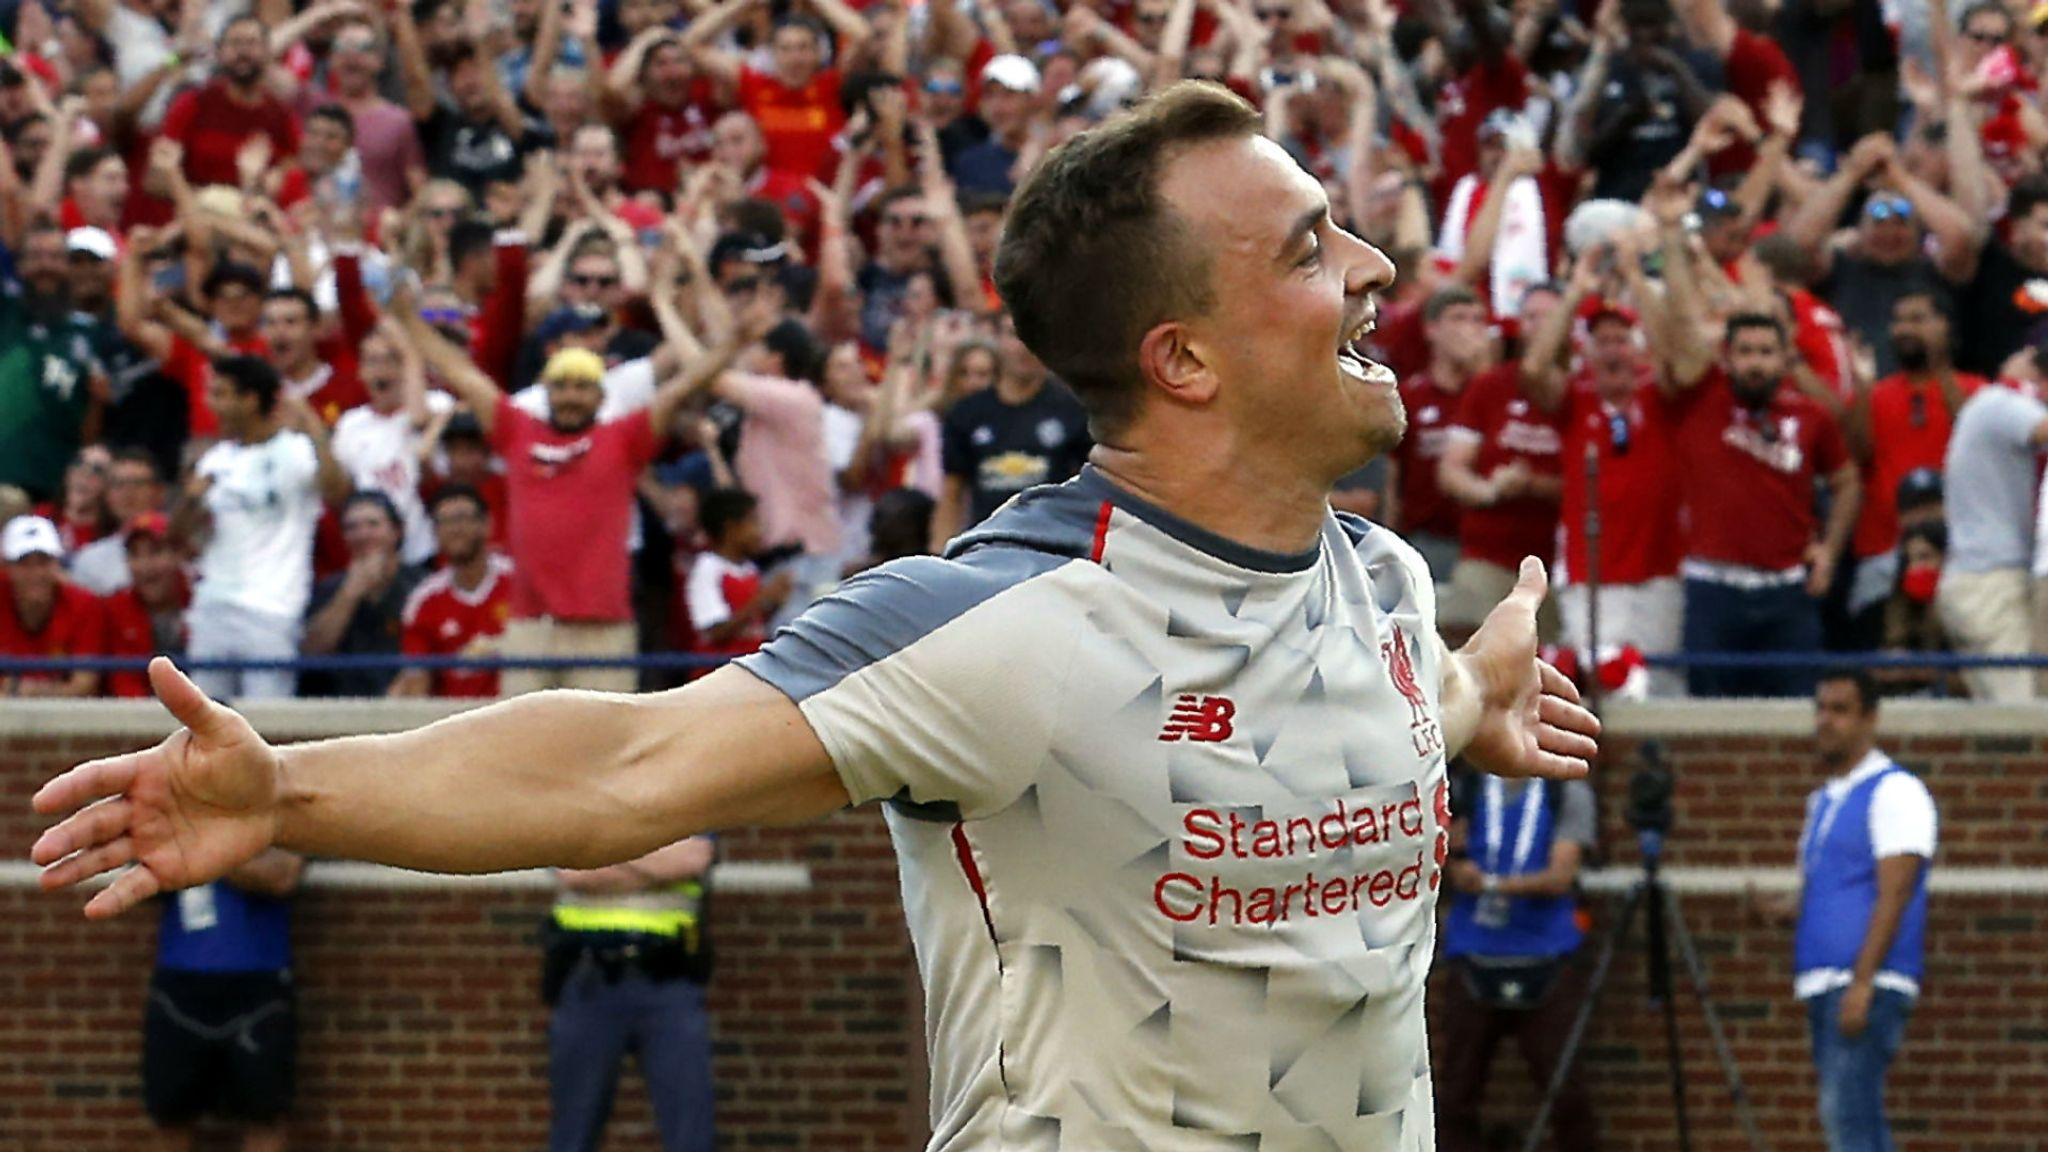 Premier League pre-season fixtures and results - keep track